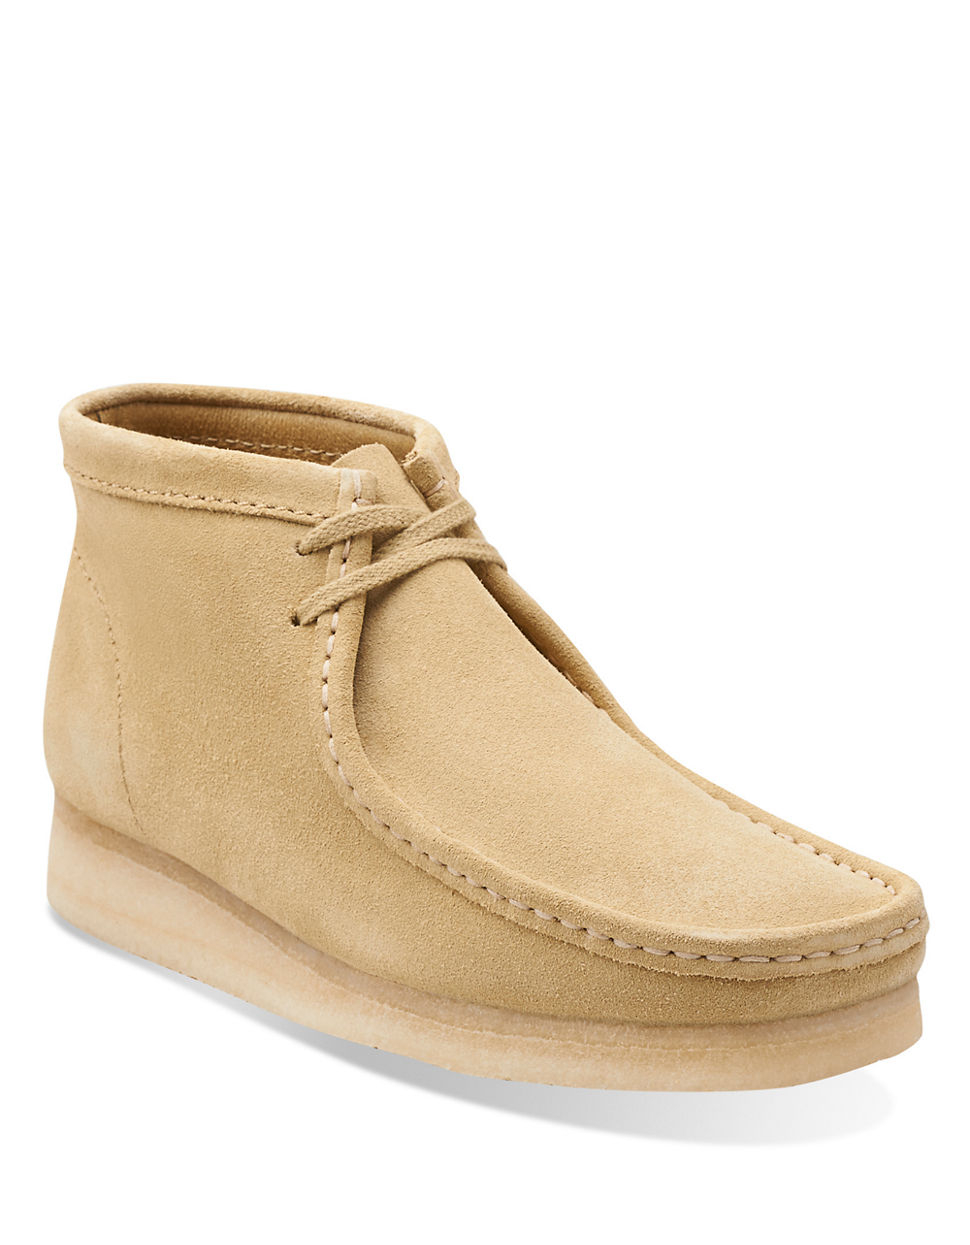 Clarks Wallabee Leather Chukka Boots in Natural for Men | Lyst